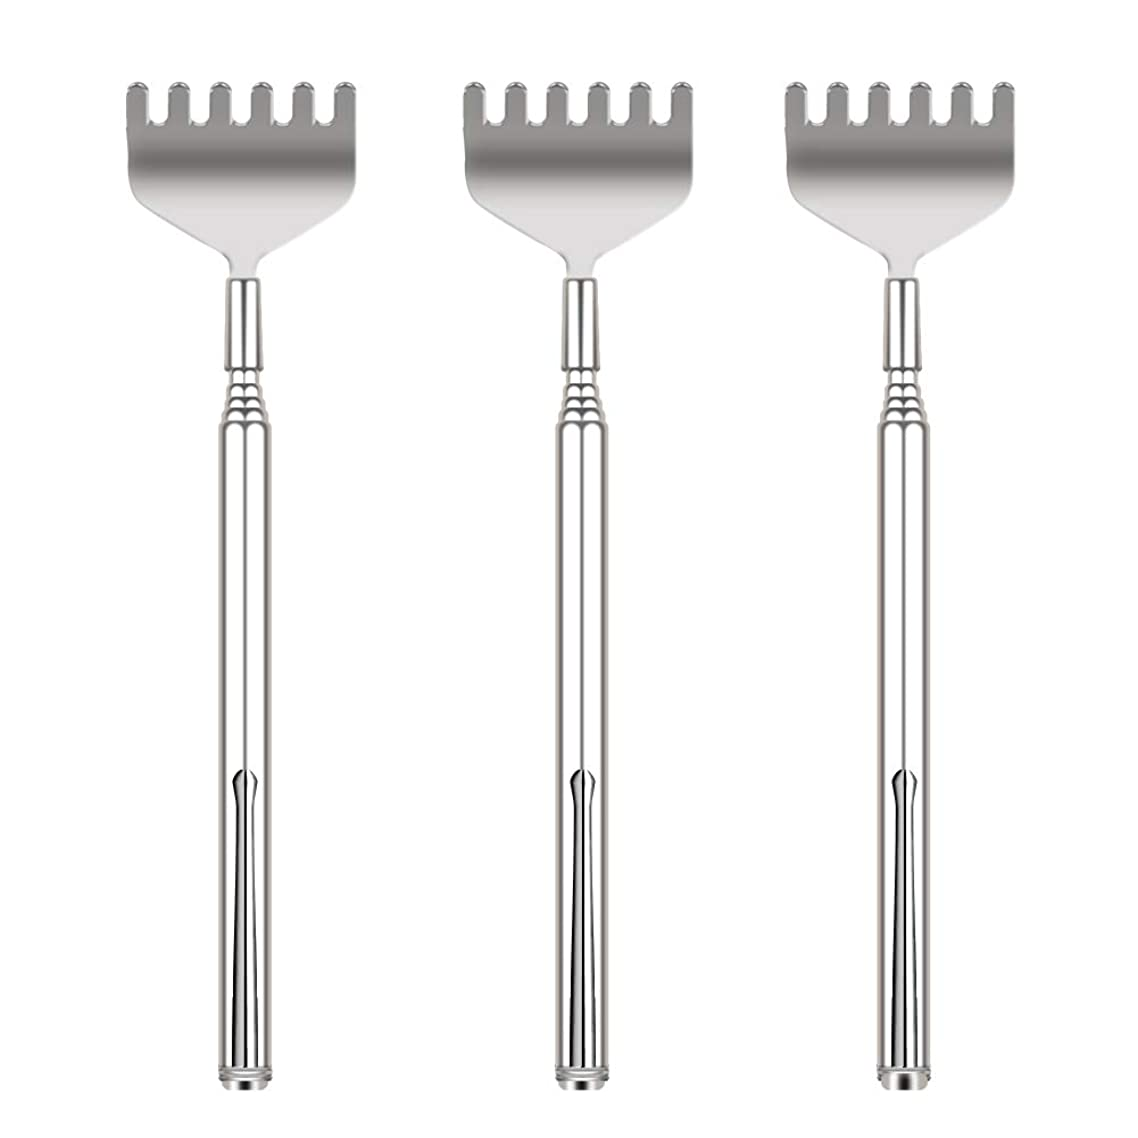 Updated 6 Tooth Back Scratcher, OHFUN 3 Pack Portable Extendable Telescopic Metal Back Scratchers/Hand Massager with Pocket Clip for Thanksgiving, Birthday, Christmas Gifts (Style 1)